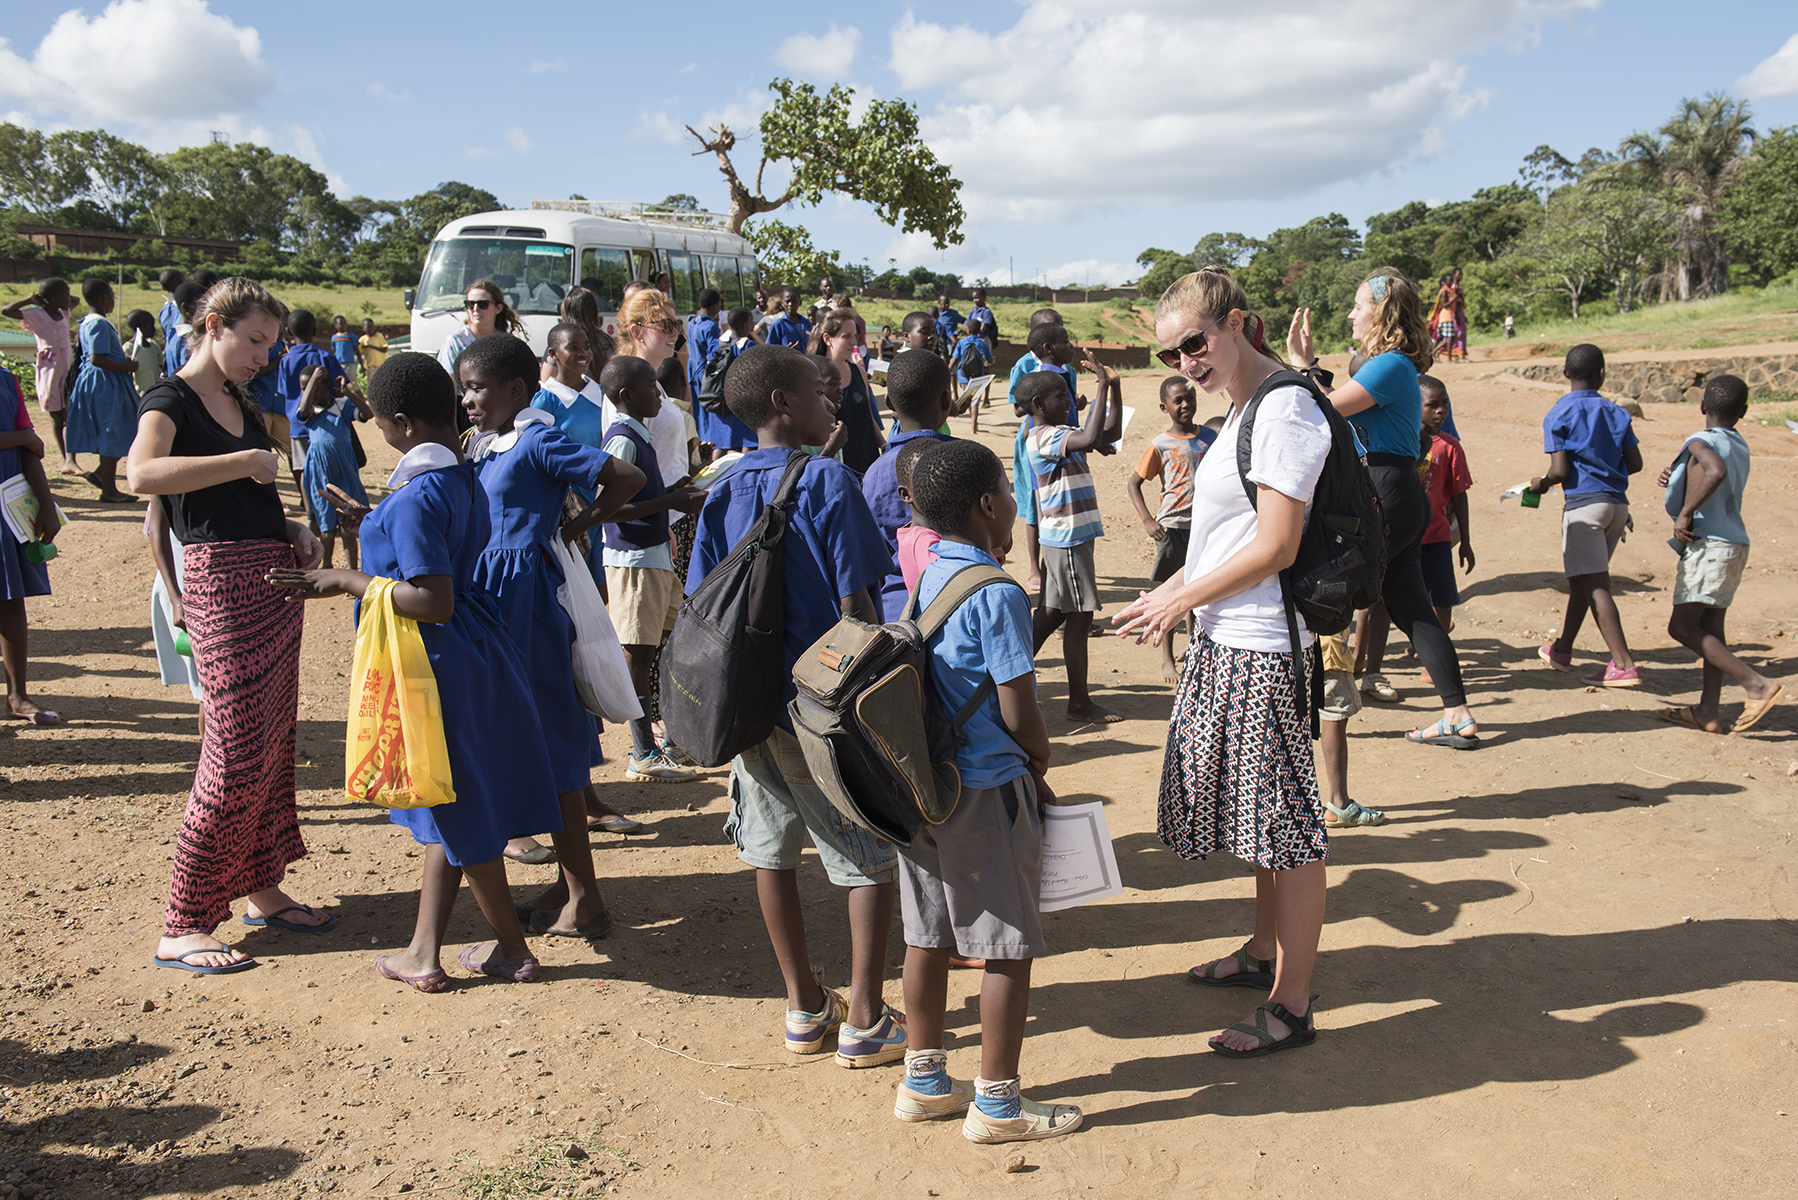 Each day after class, the Malawian children follow the Elon students to their bus, chatting and reaching to hold their hands.